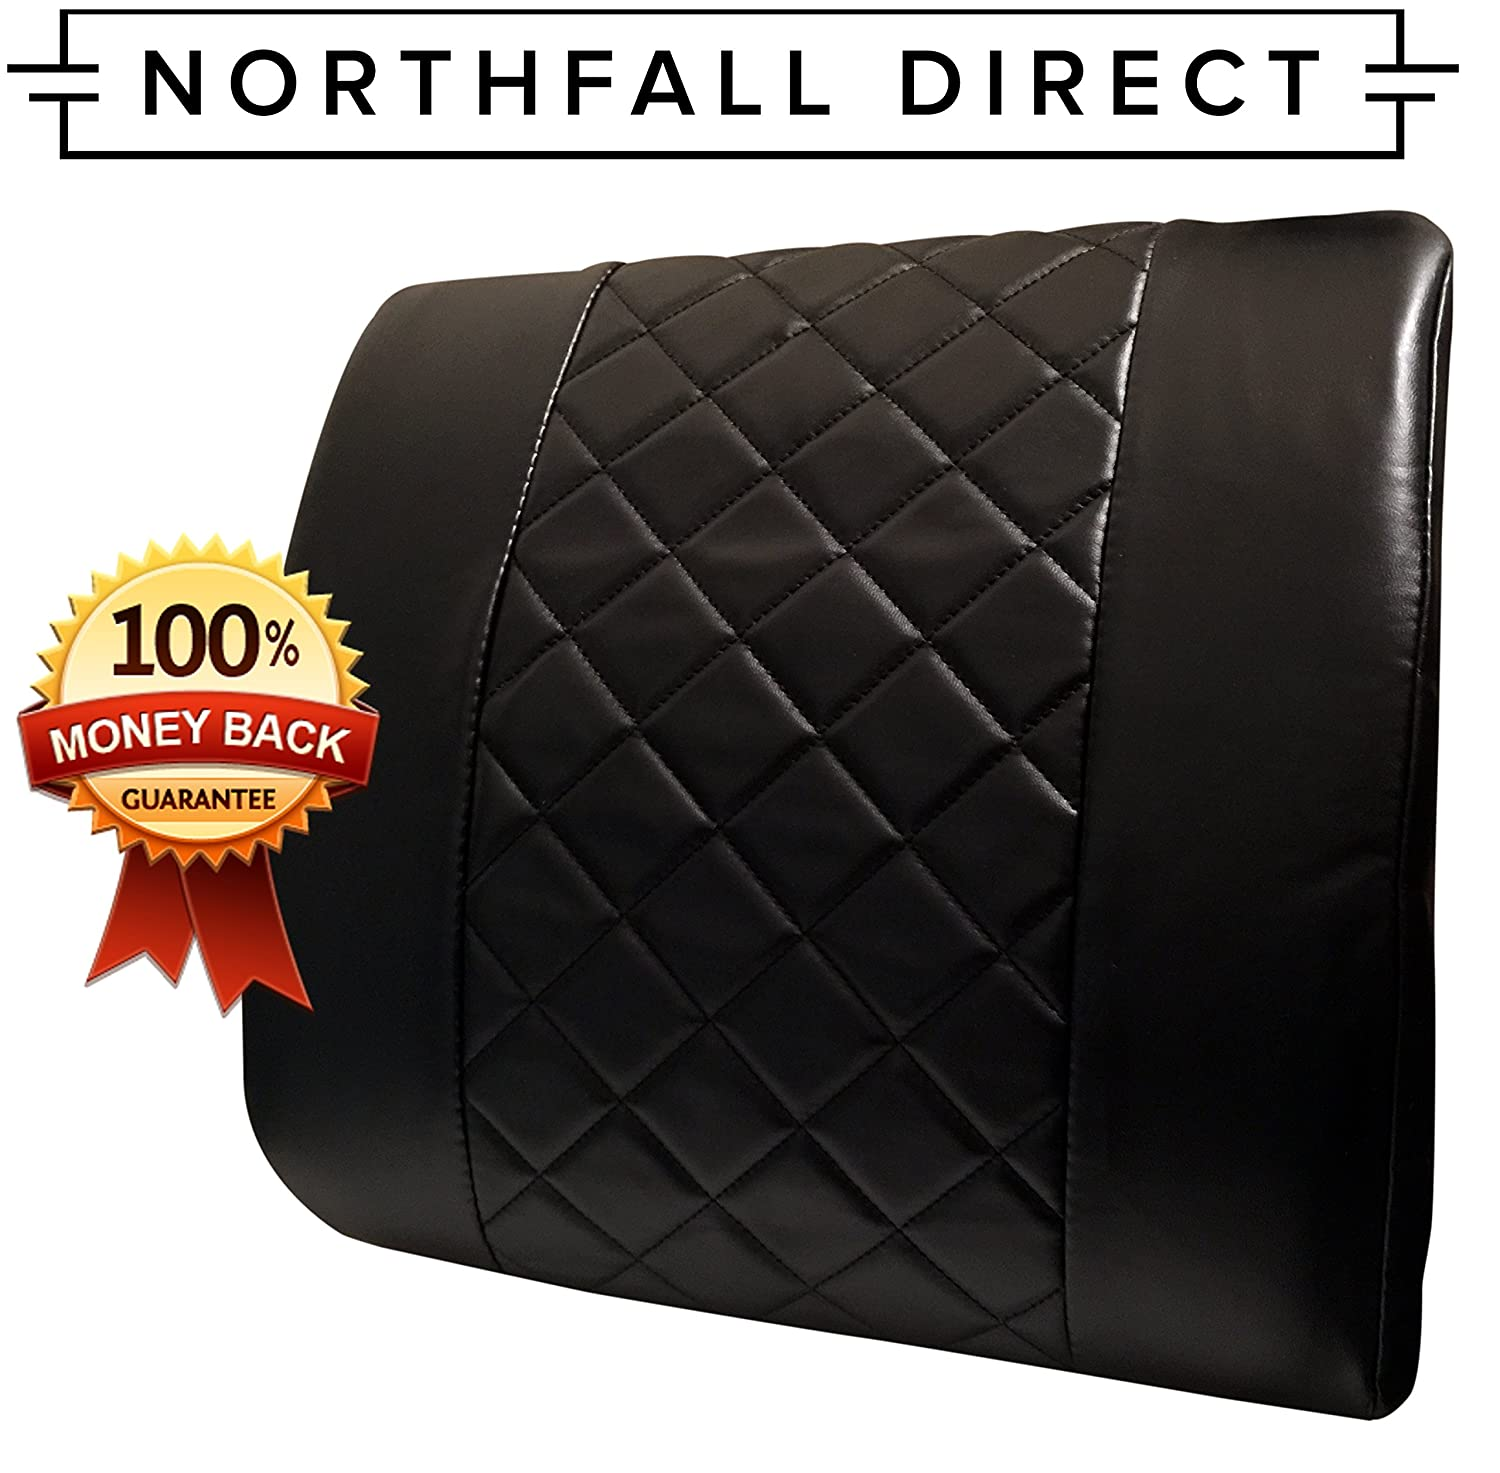 Amazon Premium PU Leather Lumbar Support by NorthFall Direct